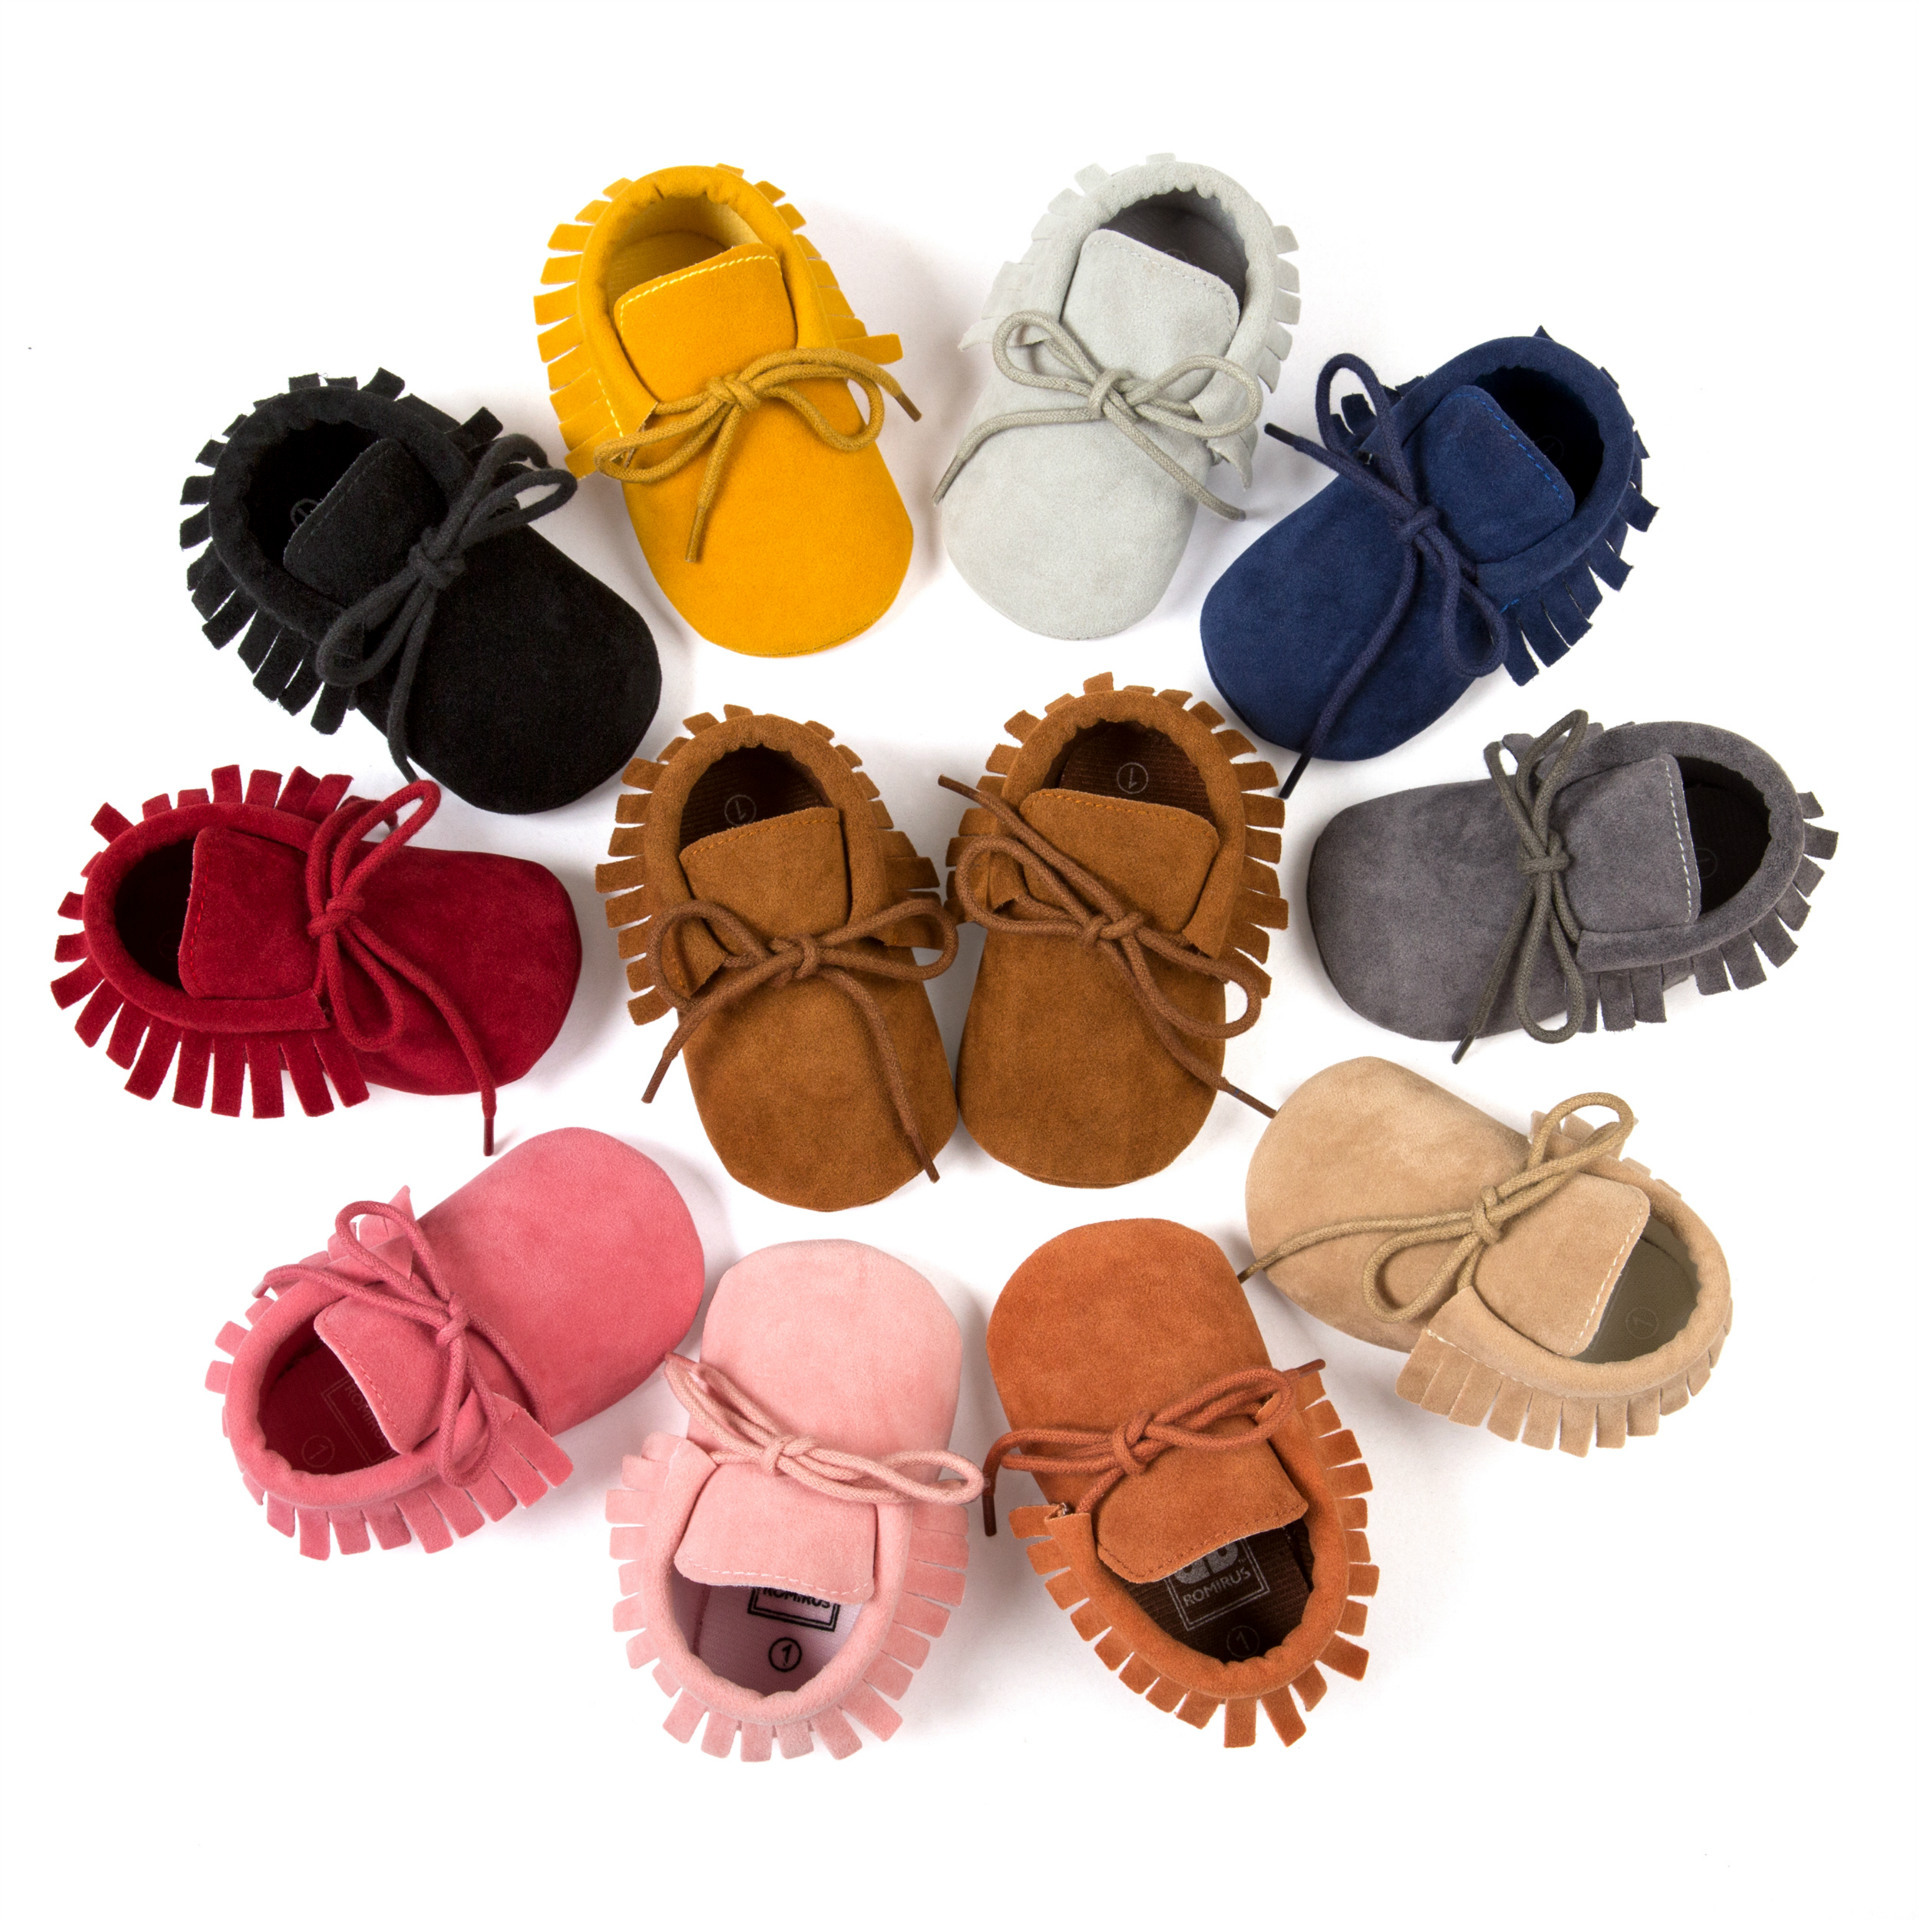 Soft Sole baby shoes Moccasin girls Baby First Walker Shoes Toddler PU Leather Non-Slip Newborn Infant Shoes For <strong>0</strong>-12M